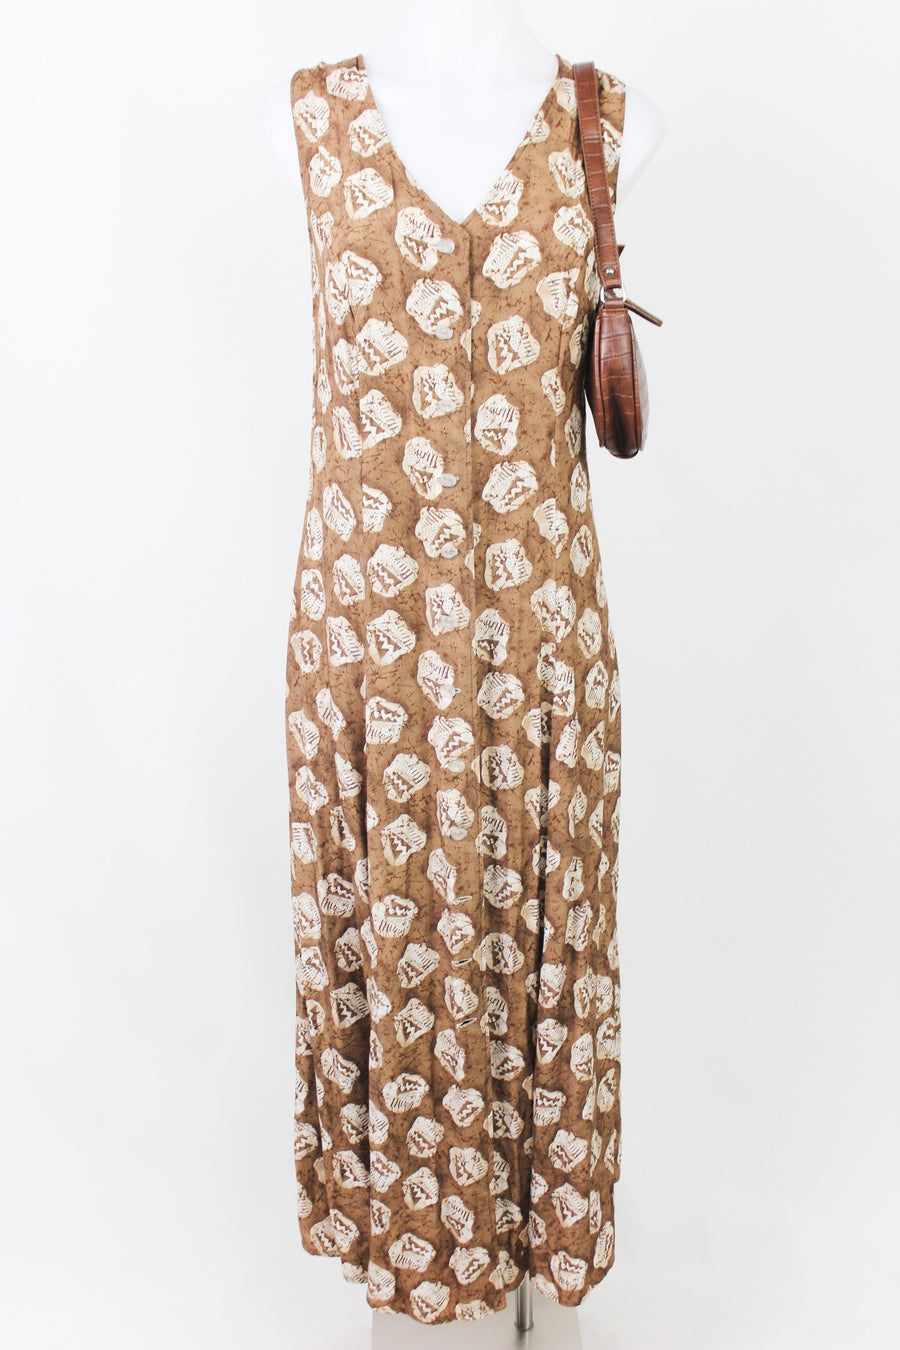 WILD WORLD VINTAGE MAXI DRESS